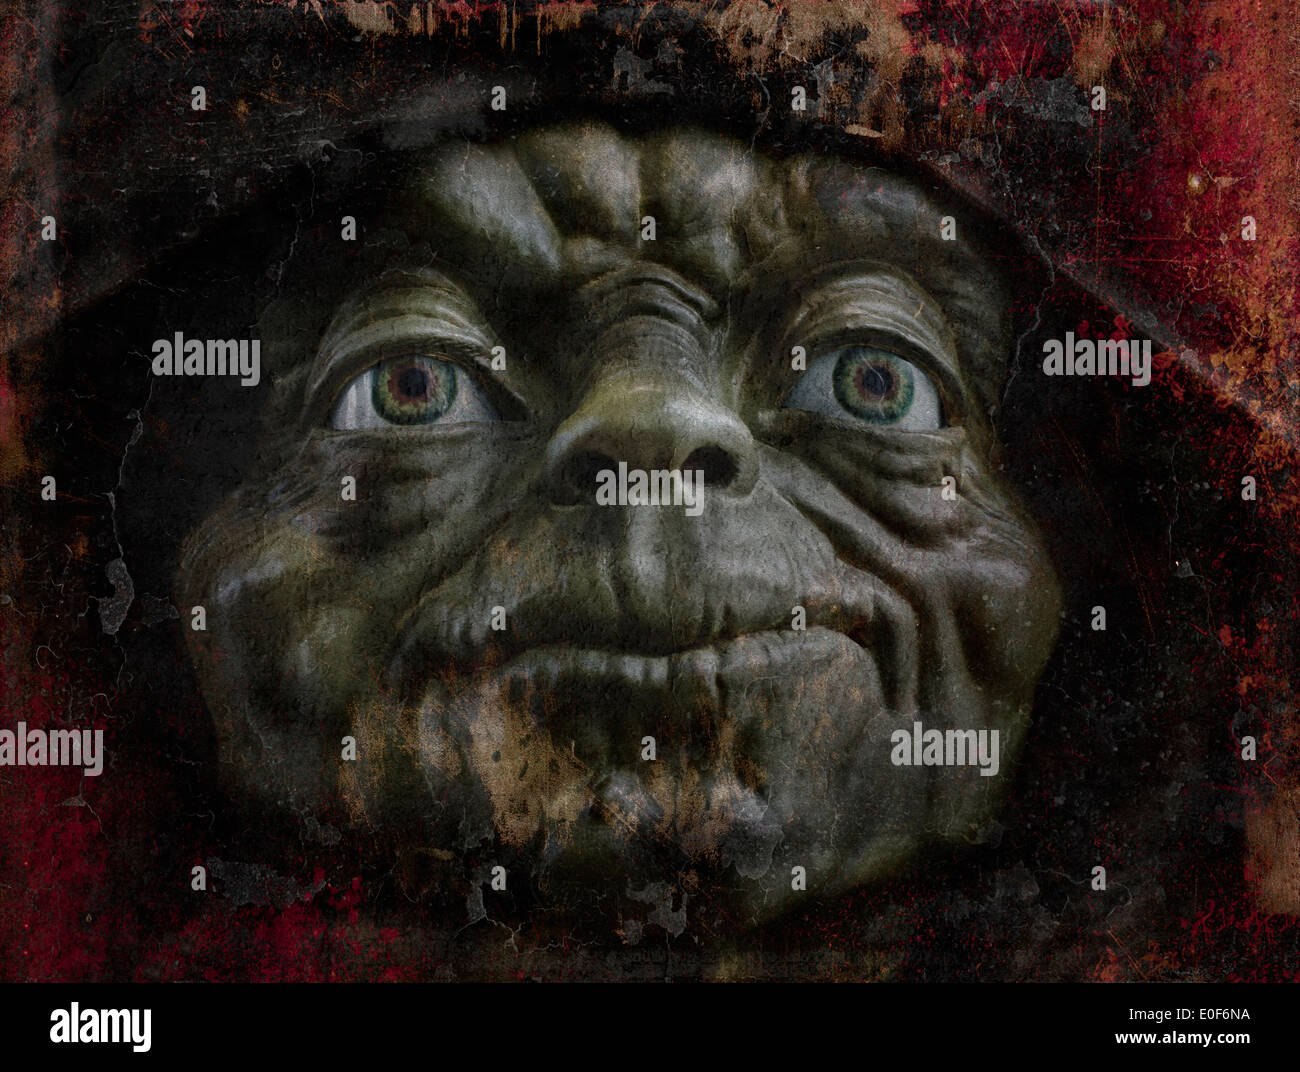 Painterly and grunge effect image of 'Master Yoda', Star Wars character. - Stock Image